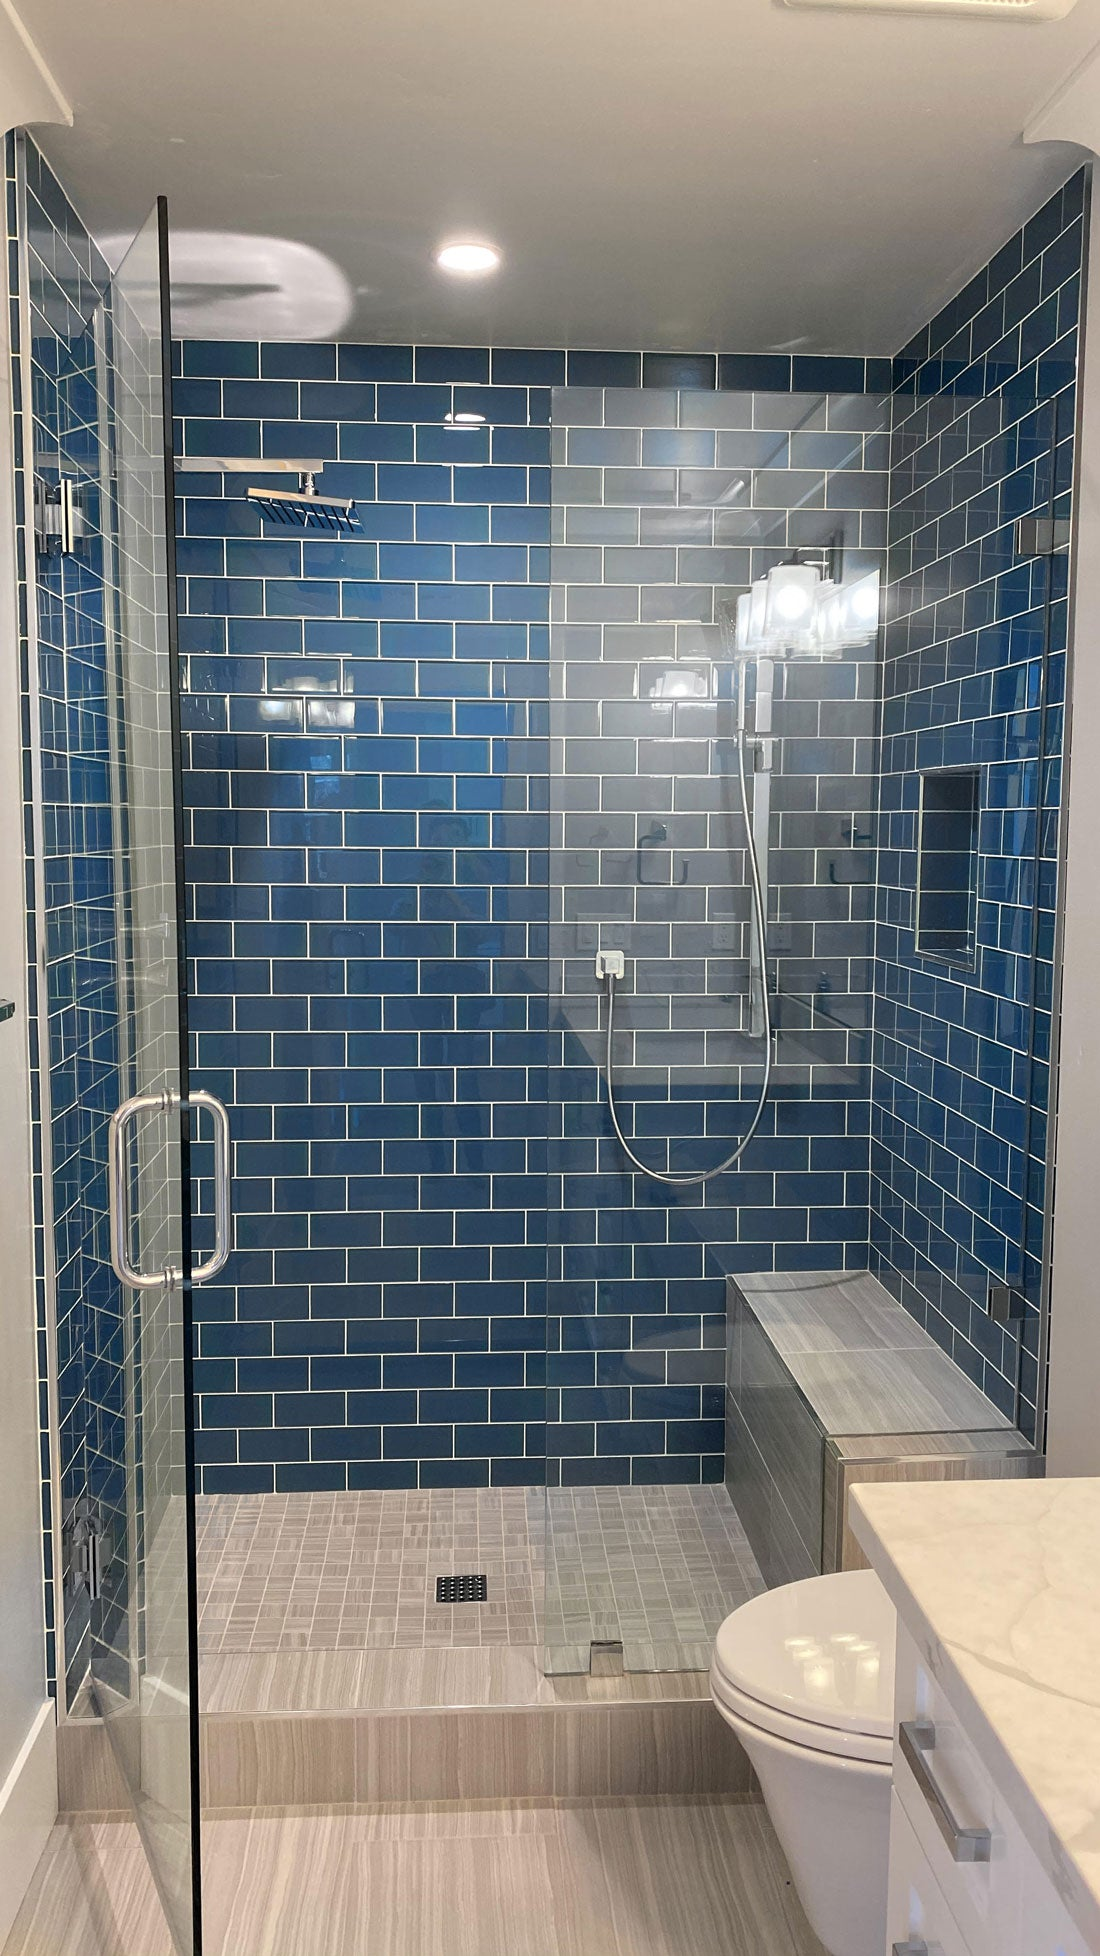 "You can't go wrong with a classic shower wall like our Glacier Ocean Blue 3"" x 6"" Polished Glass Tile in a running bond - but it's nice to have so many creative subway tile pattern ideas to try if you want something a little unique!"